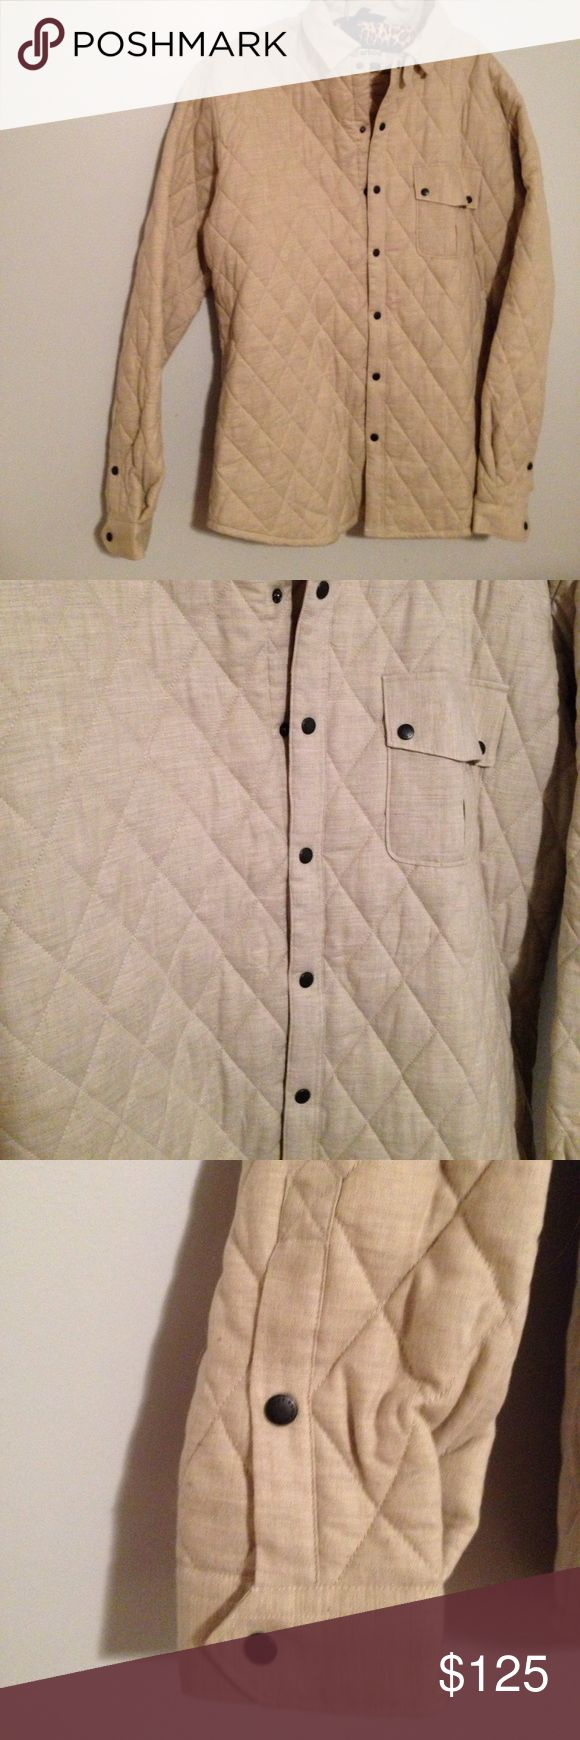 Men's Barbour NWOT Quilted Cream Fall Jacket LG Men's size large Barbour authentic quilted jacket. BRAND NEW. NEVER BEEN WORN! Does not come with tags. Purchased for my fiancé as a Christmas present and was sure it'd fit. It didn't. My loss but your gain! Tan/cream color. Quilted and has a similar liner. Has eyelet vents in the armpits. Snap up closure. Beautiful quilted jacket. Very comfortable too! Sad to see it go! Barbour Jackets & Coats Lightweight & Shirt Jackets